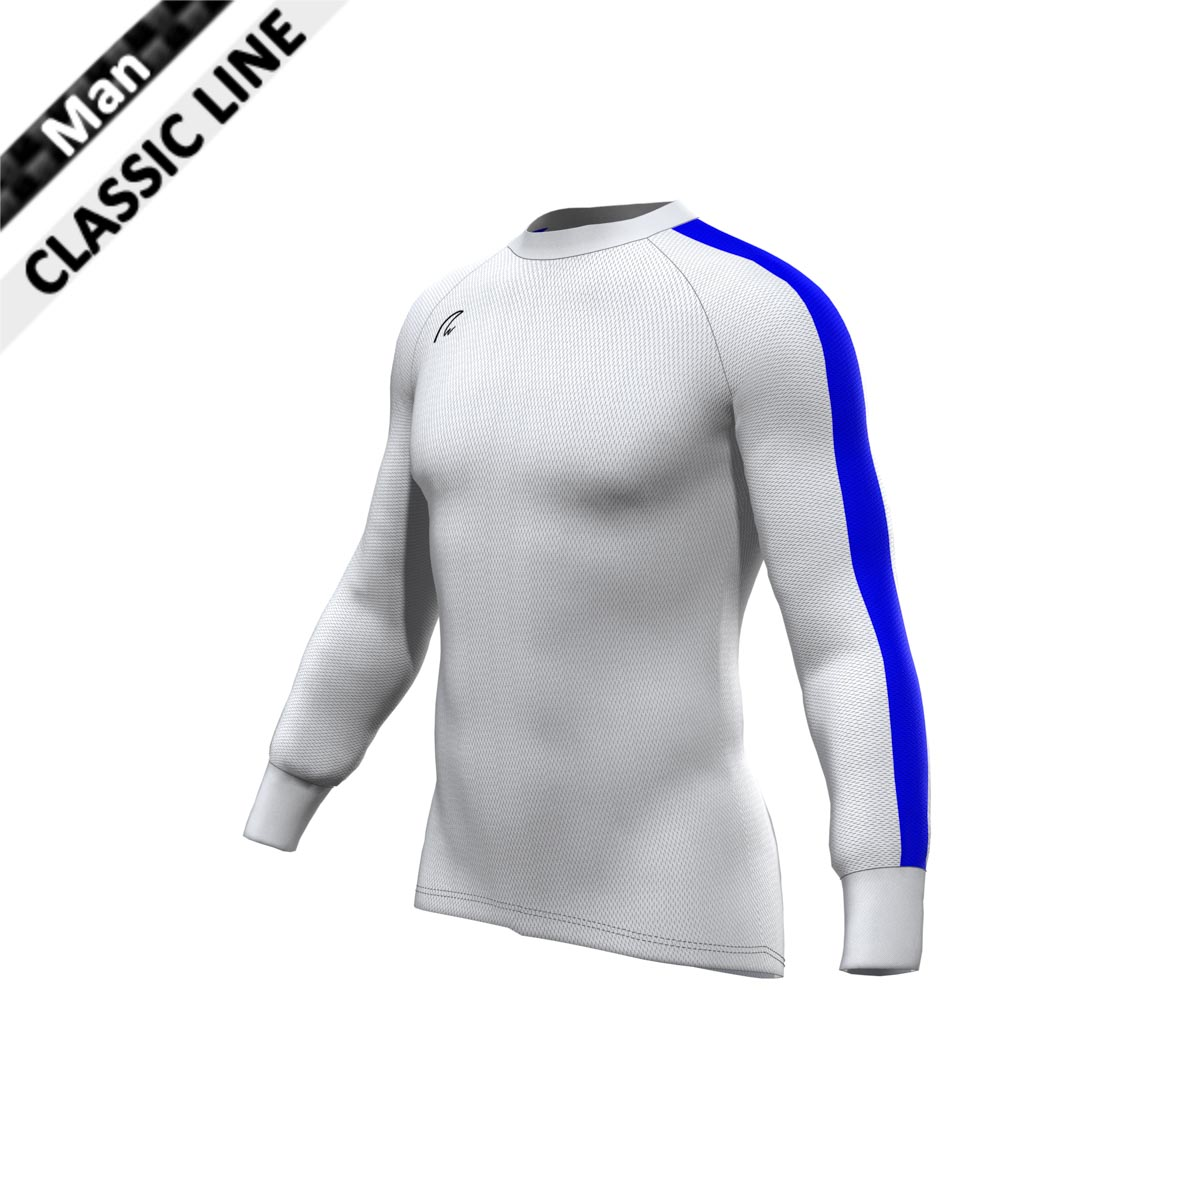 CoolMax Longsleeve - Man weiss-royal blau